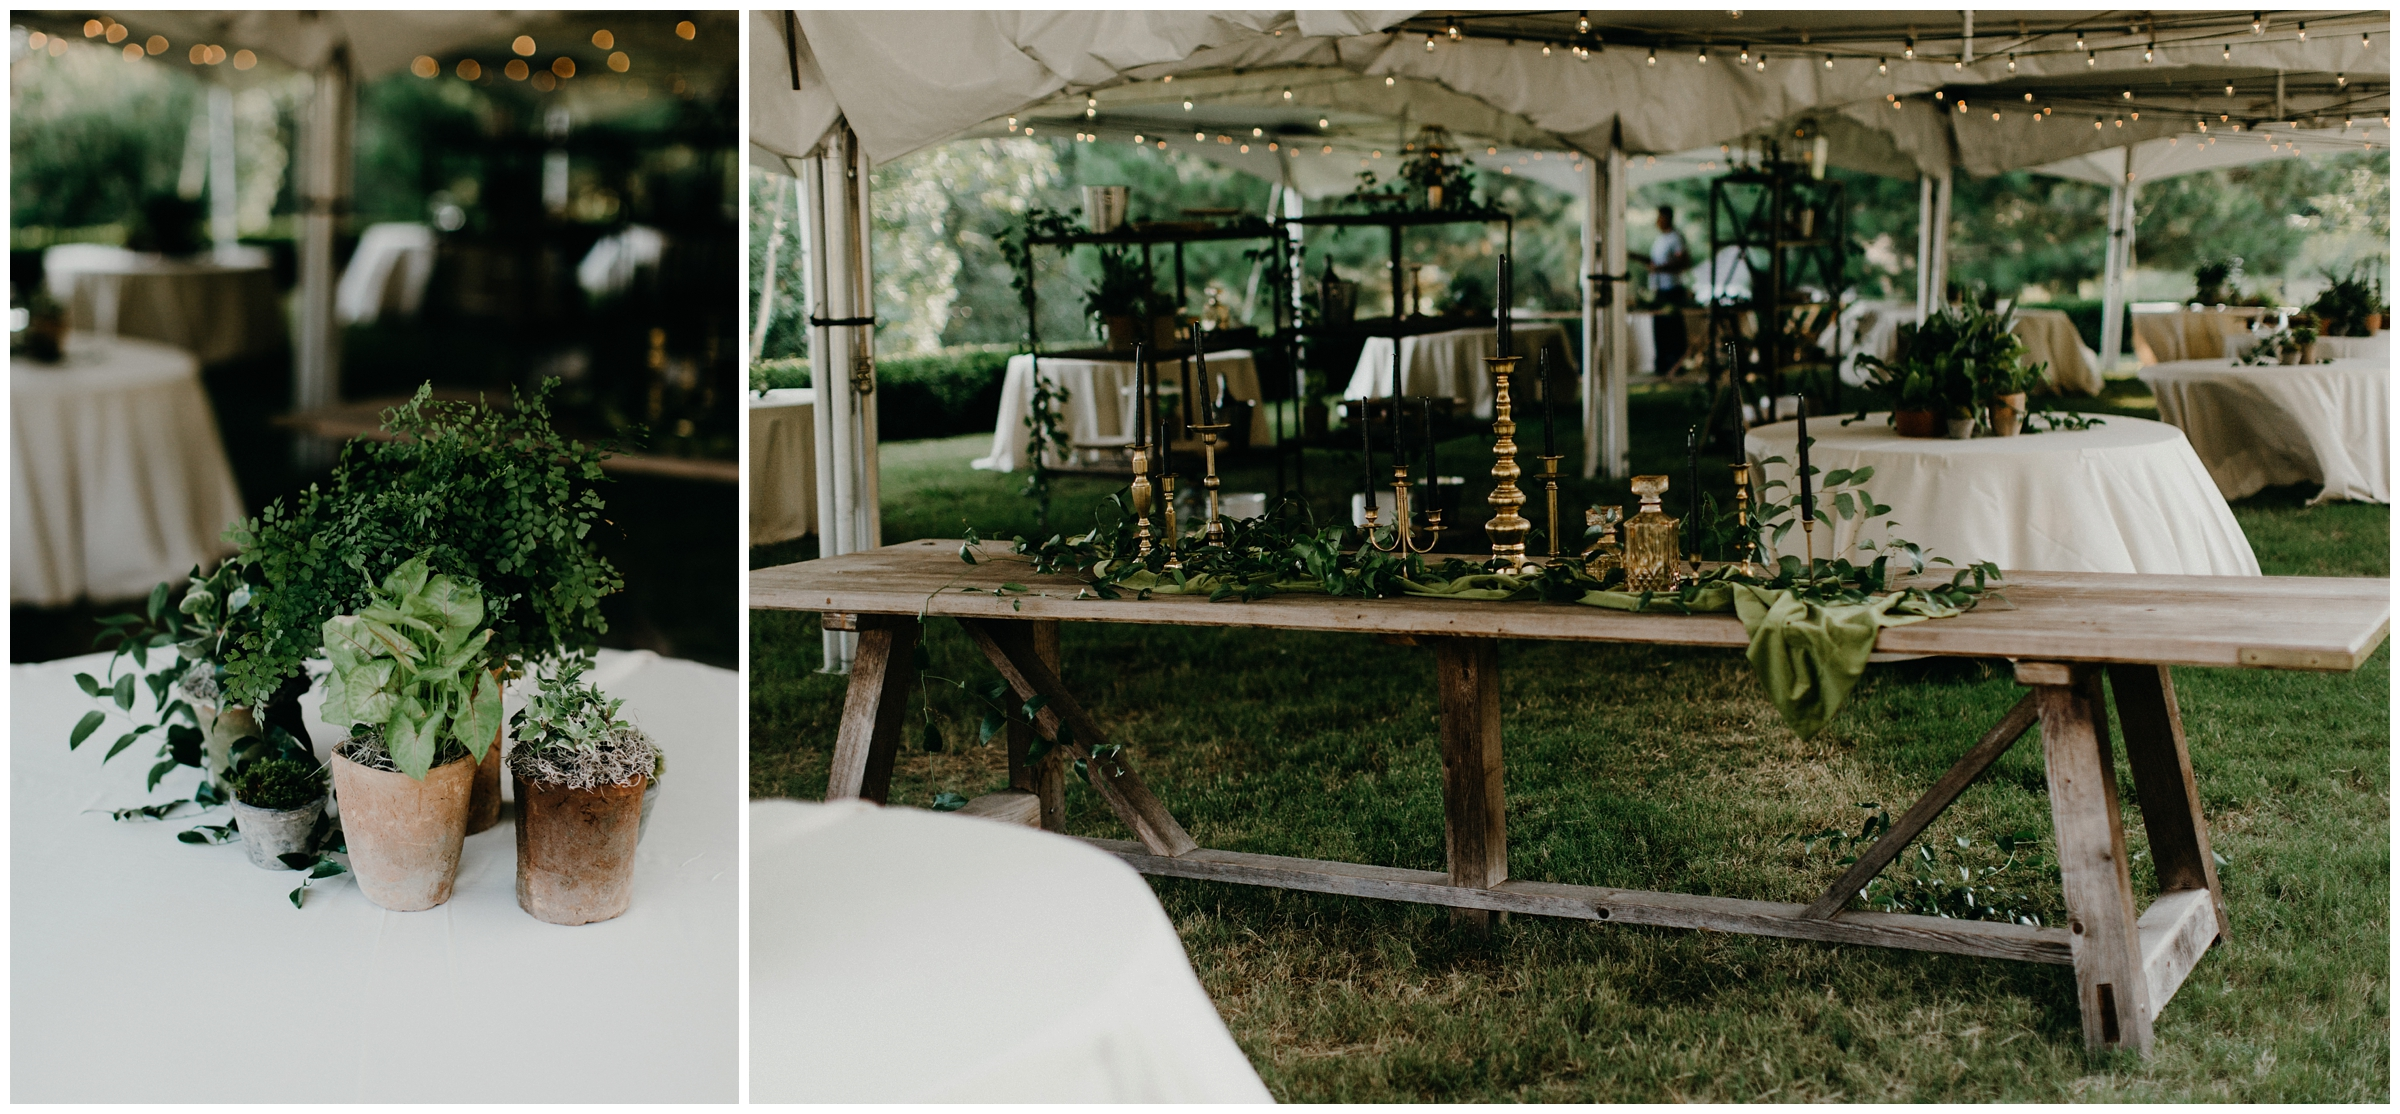 JLK wedding design at autumns ridge plantation